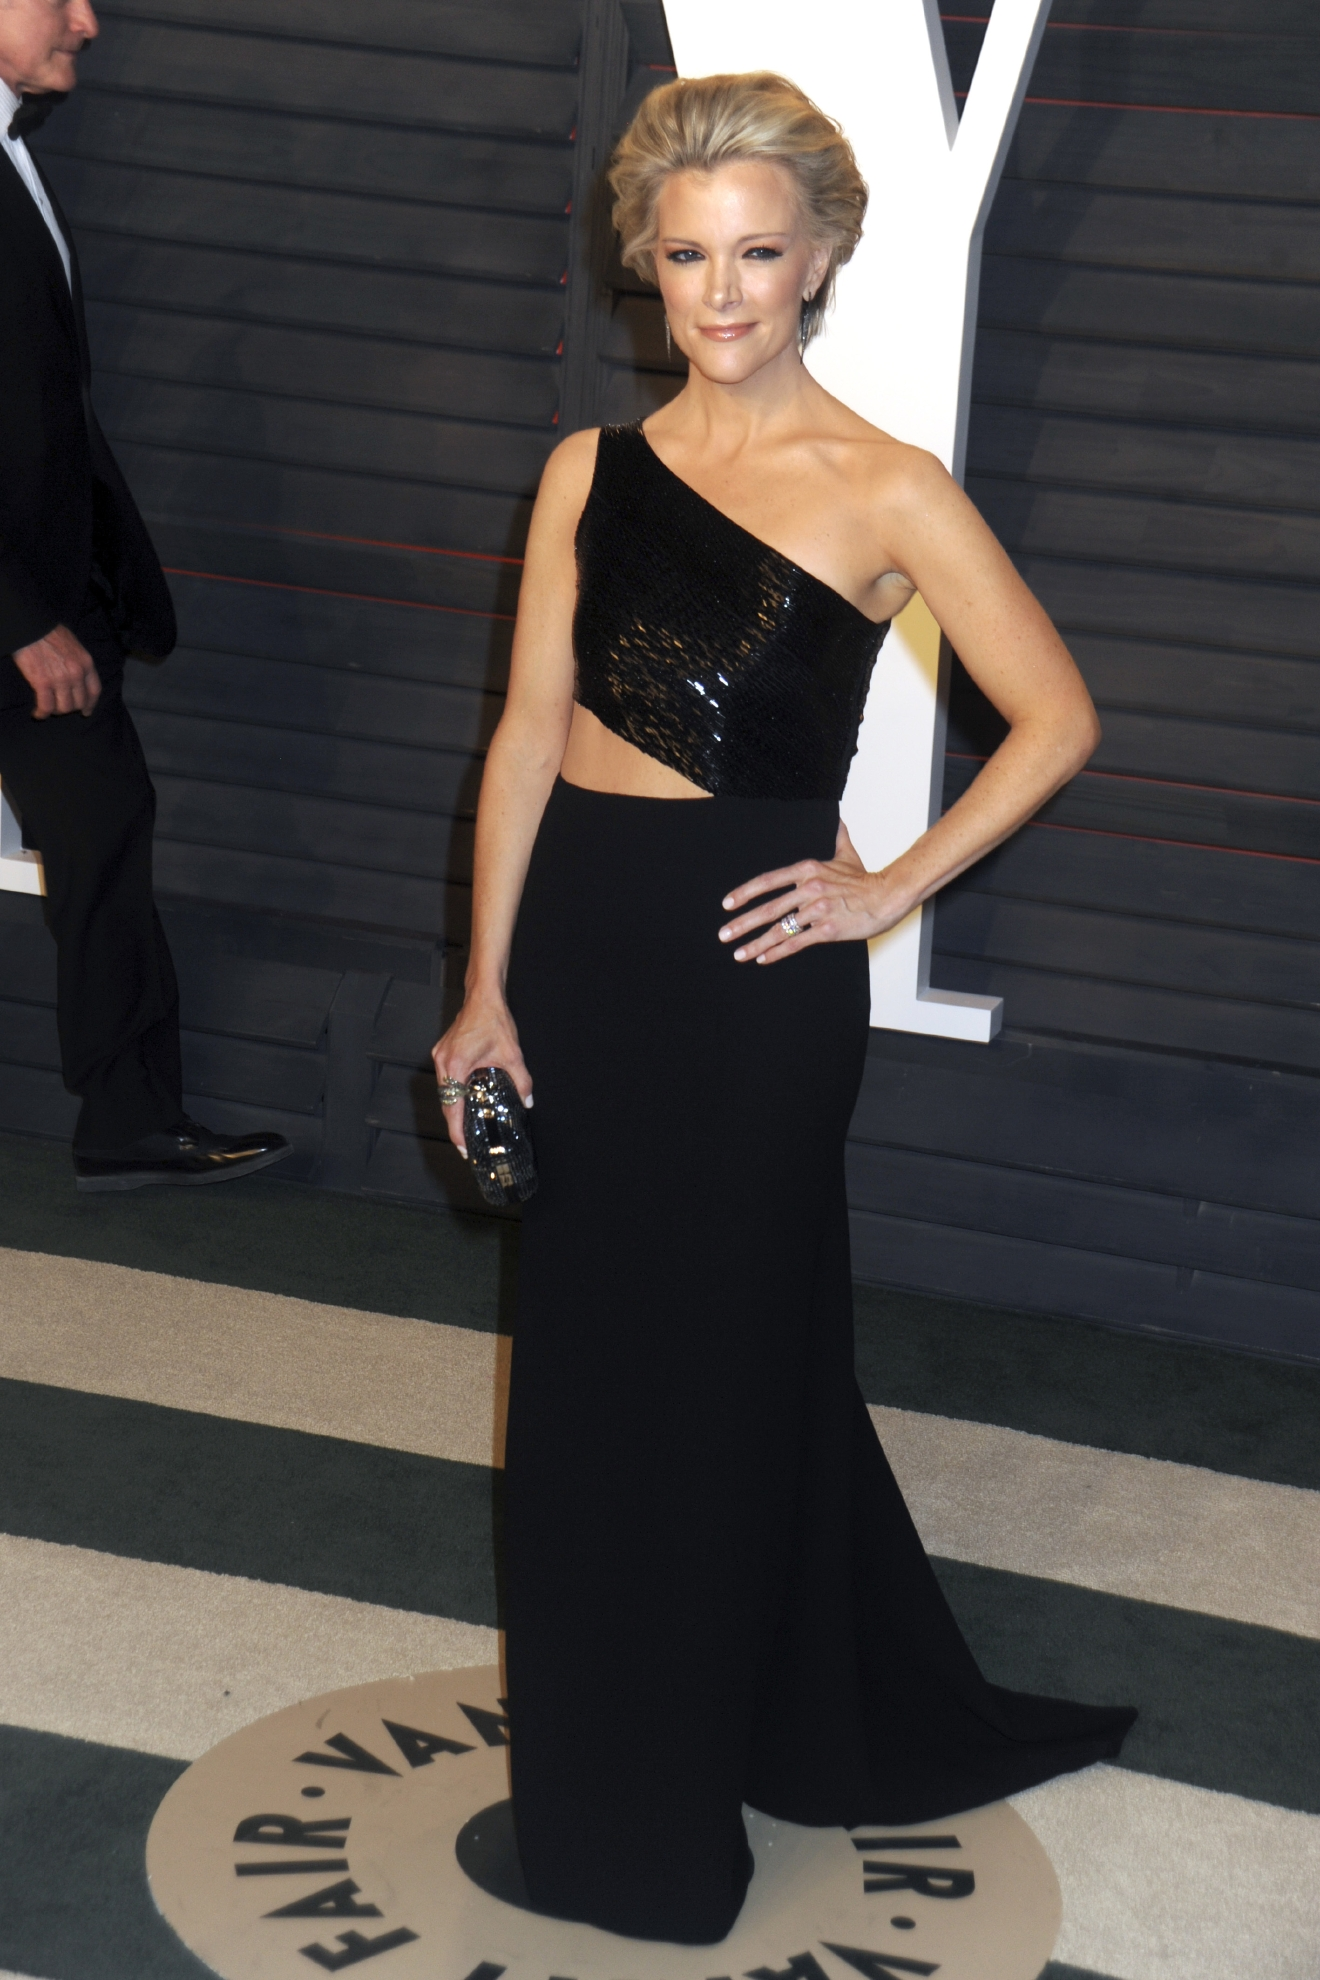 Megyn Kelly attending the 2016 Vanity Fair Oscar Party Hosted By Graydon Carter at Wallis Annenberg Center for the Performing Arts on February 28, 2016 in Beverly Hills, California.                                    Where: Hollywood, California, United States                  When: 28 Feb 2016                  Credit: Dennis Van Tine/Future Image/WENN.com                                    **Not available for publication in Germany, Poland, Russia, Hungary, Slovenia, Czech Republic, Serbia, Croatia, Slovakia**